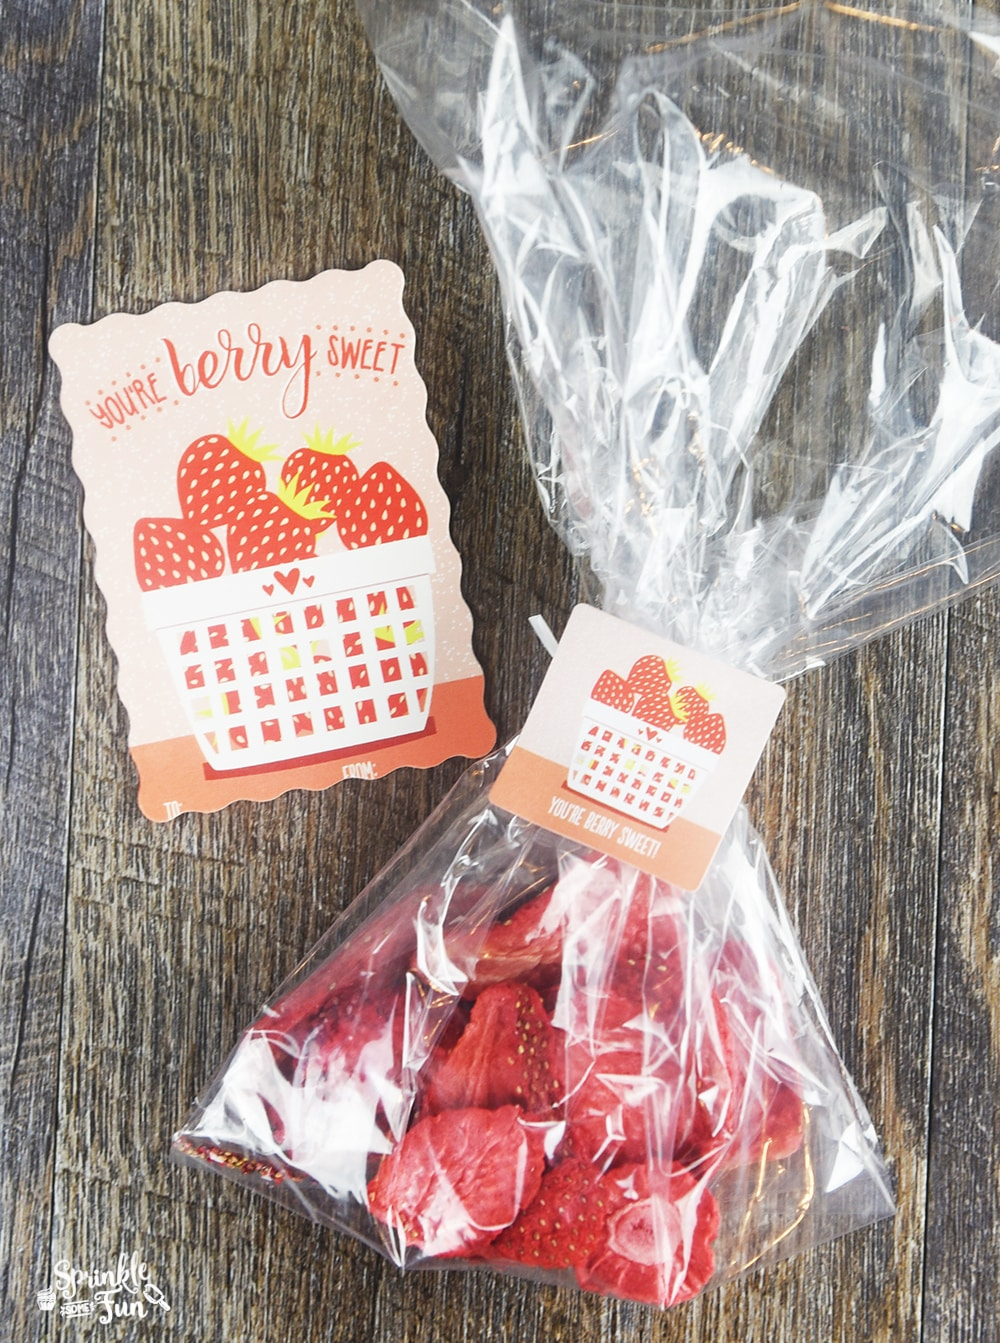 7 Super Cute Valentines!  You are berry sweet, Valentine!